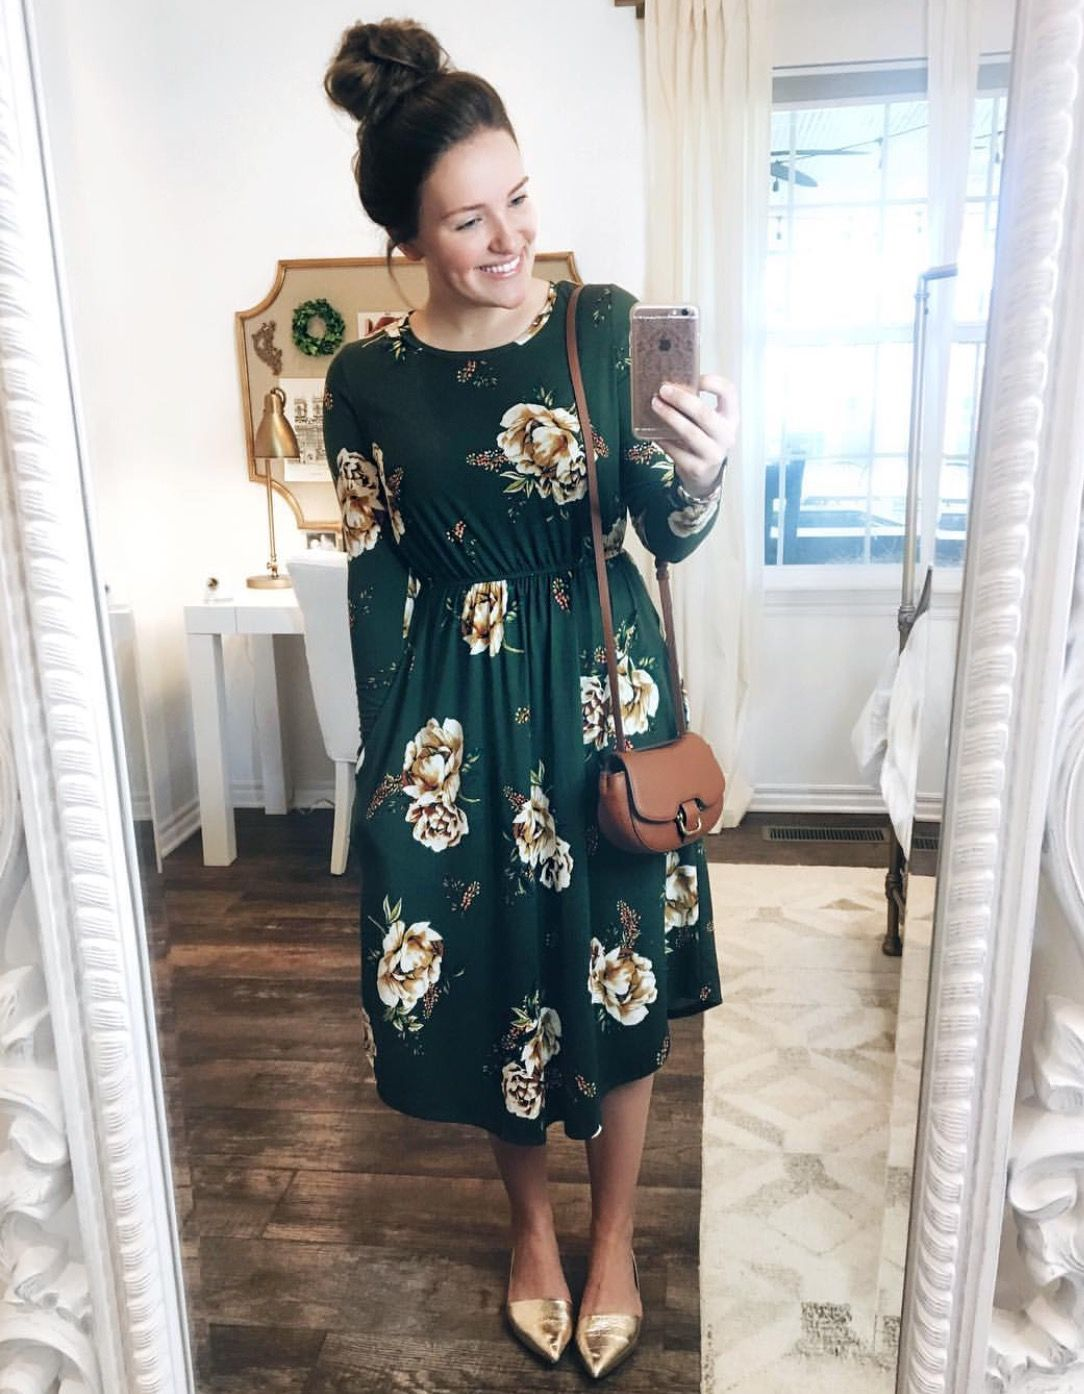 af5cd2c49b0 25 Amazing Boho-Chic Style Inspirations and Outfit Ideas ...